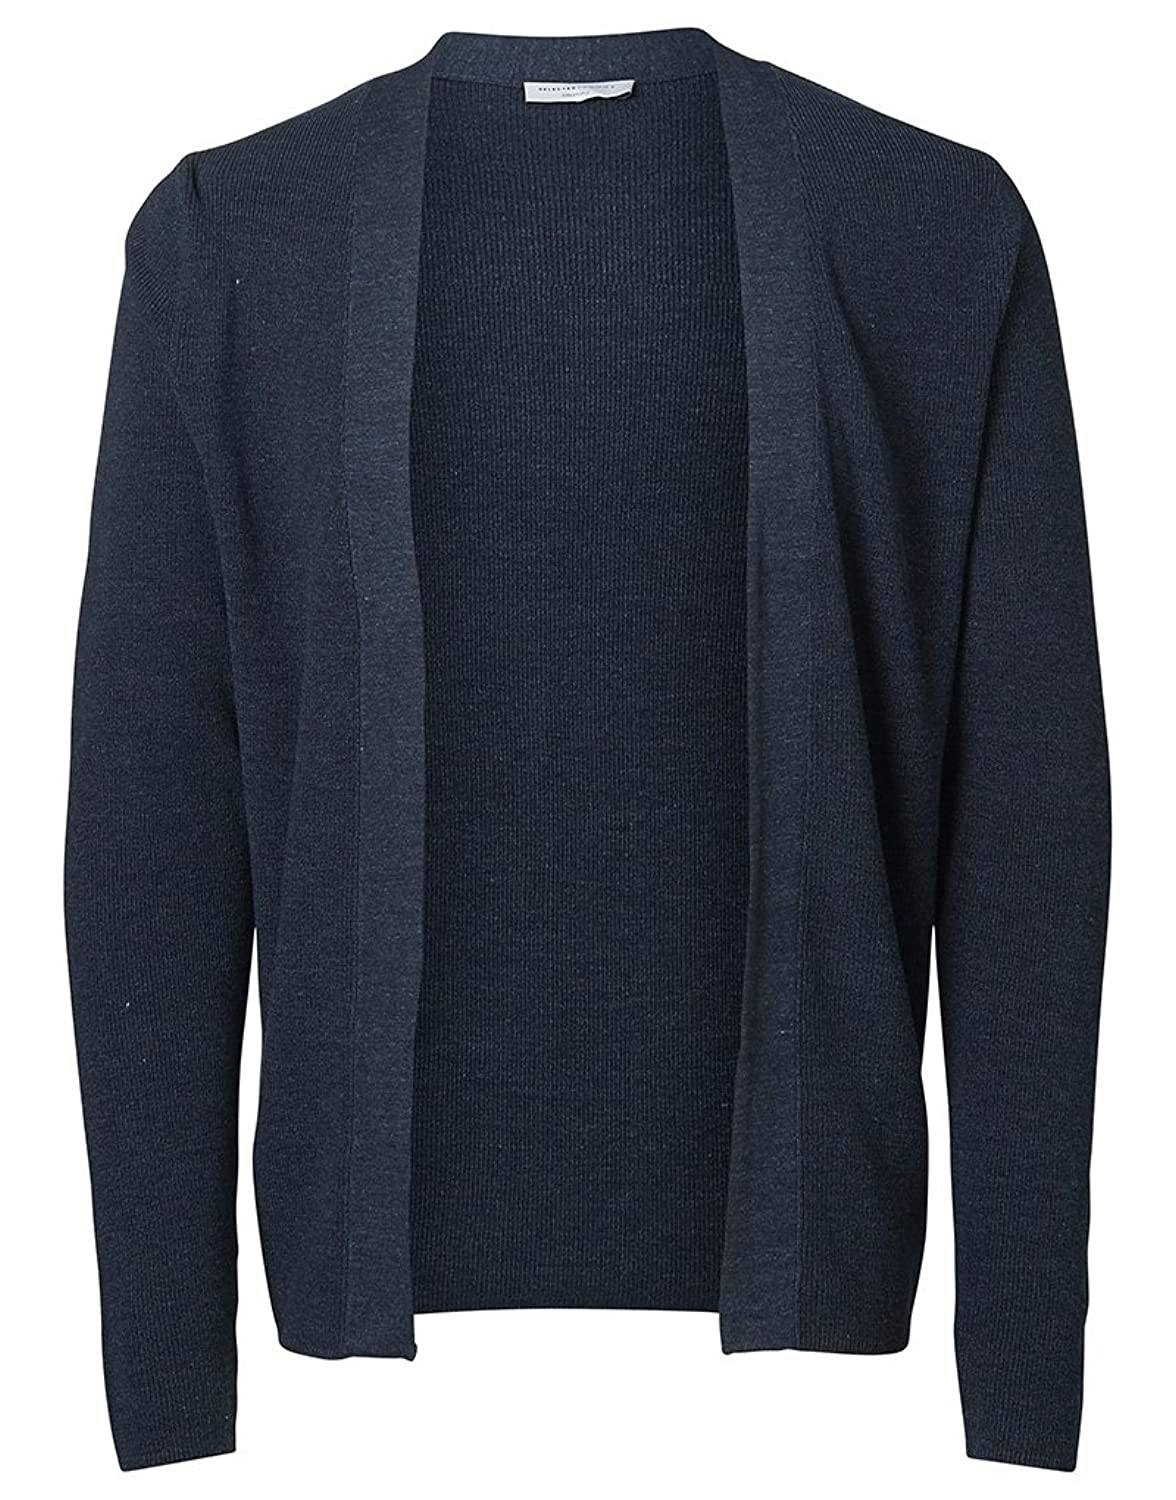 Selected Homme Chad Cardigan in Nazy Blazer